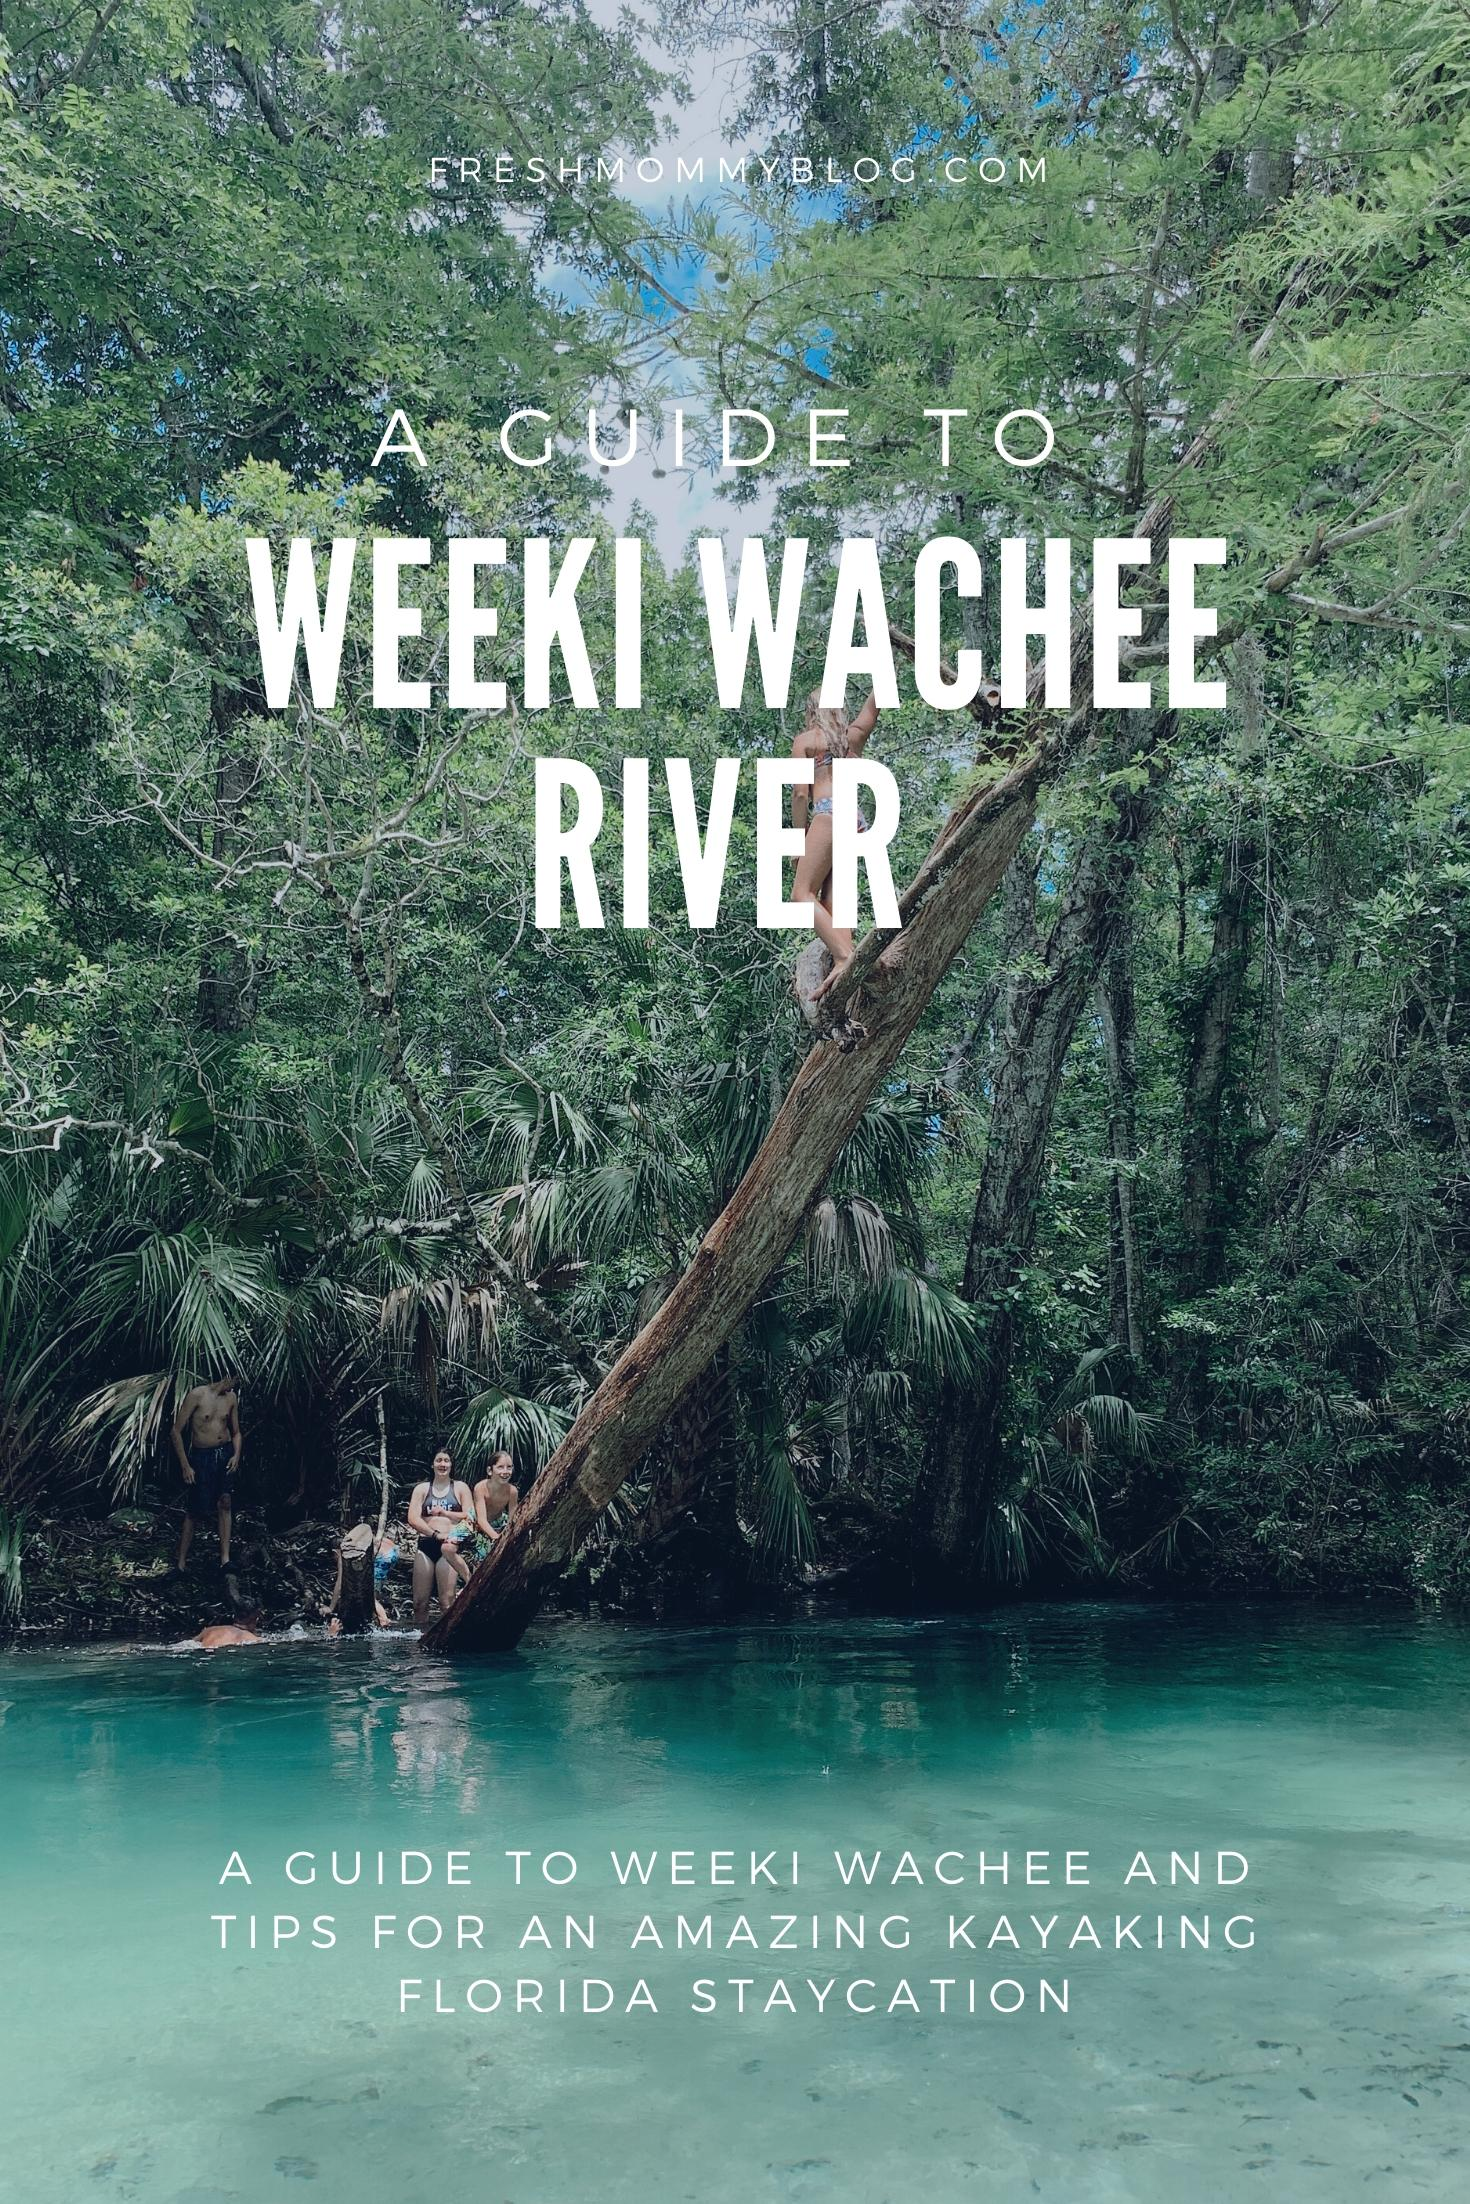 Tips for an Amazing Weeki Wachee Kayaking Florida Staycation. Visit Florida Travel ideas from top lifestyle blogger Tabitha Blue of Fresh Mommy Blog. | Weeki Wachee Kayaking by popular Florida blog, Fresh Mommy Blog: Pinterest image of the Weeki Wachee River.